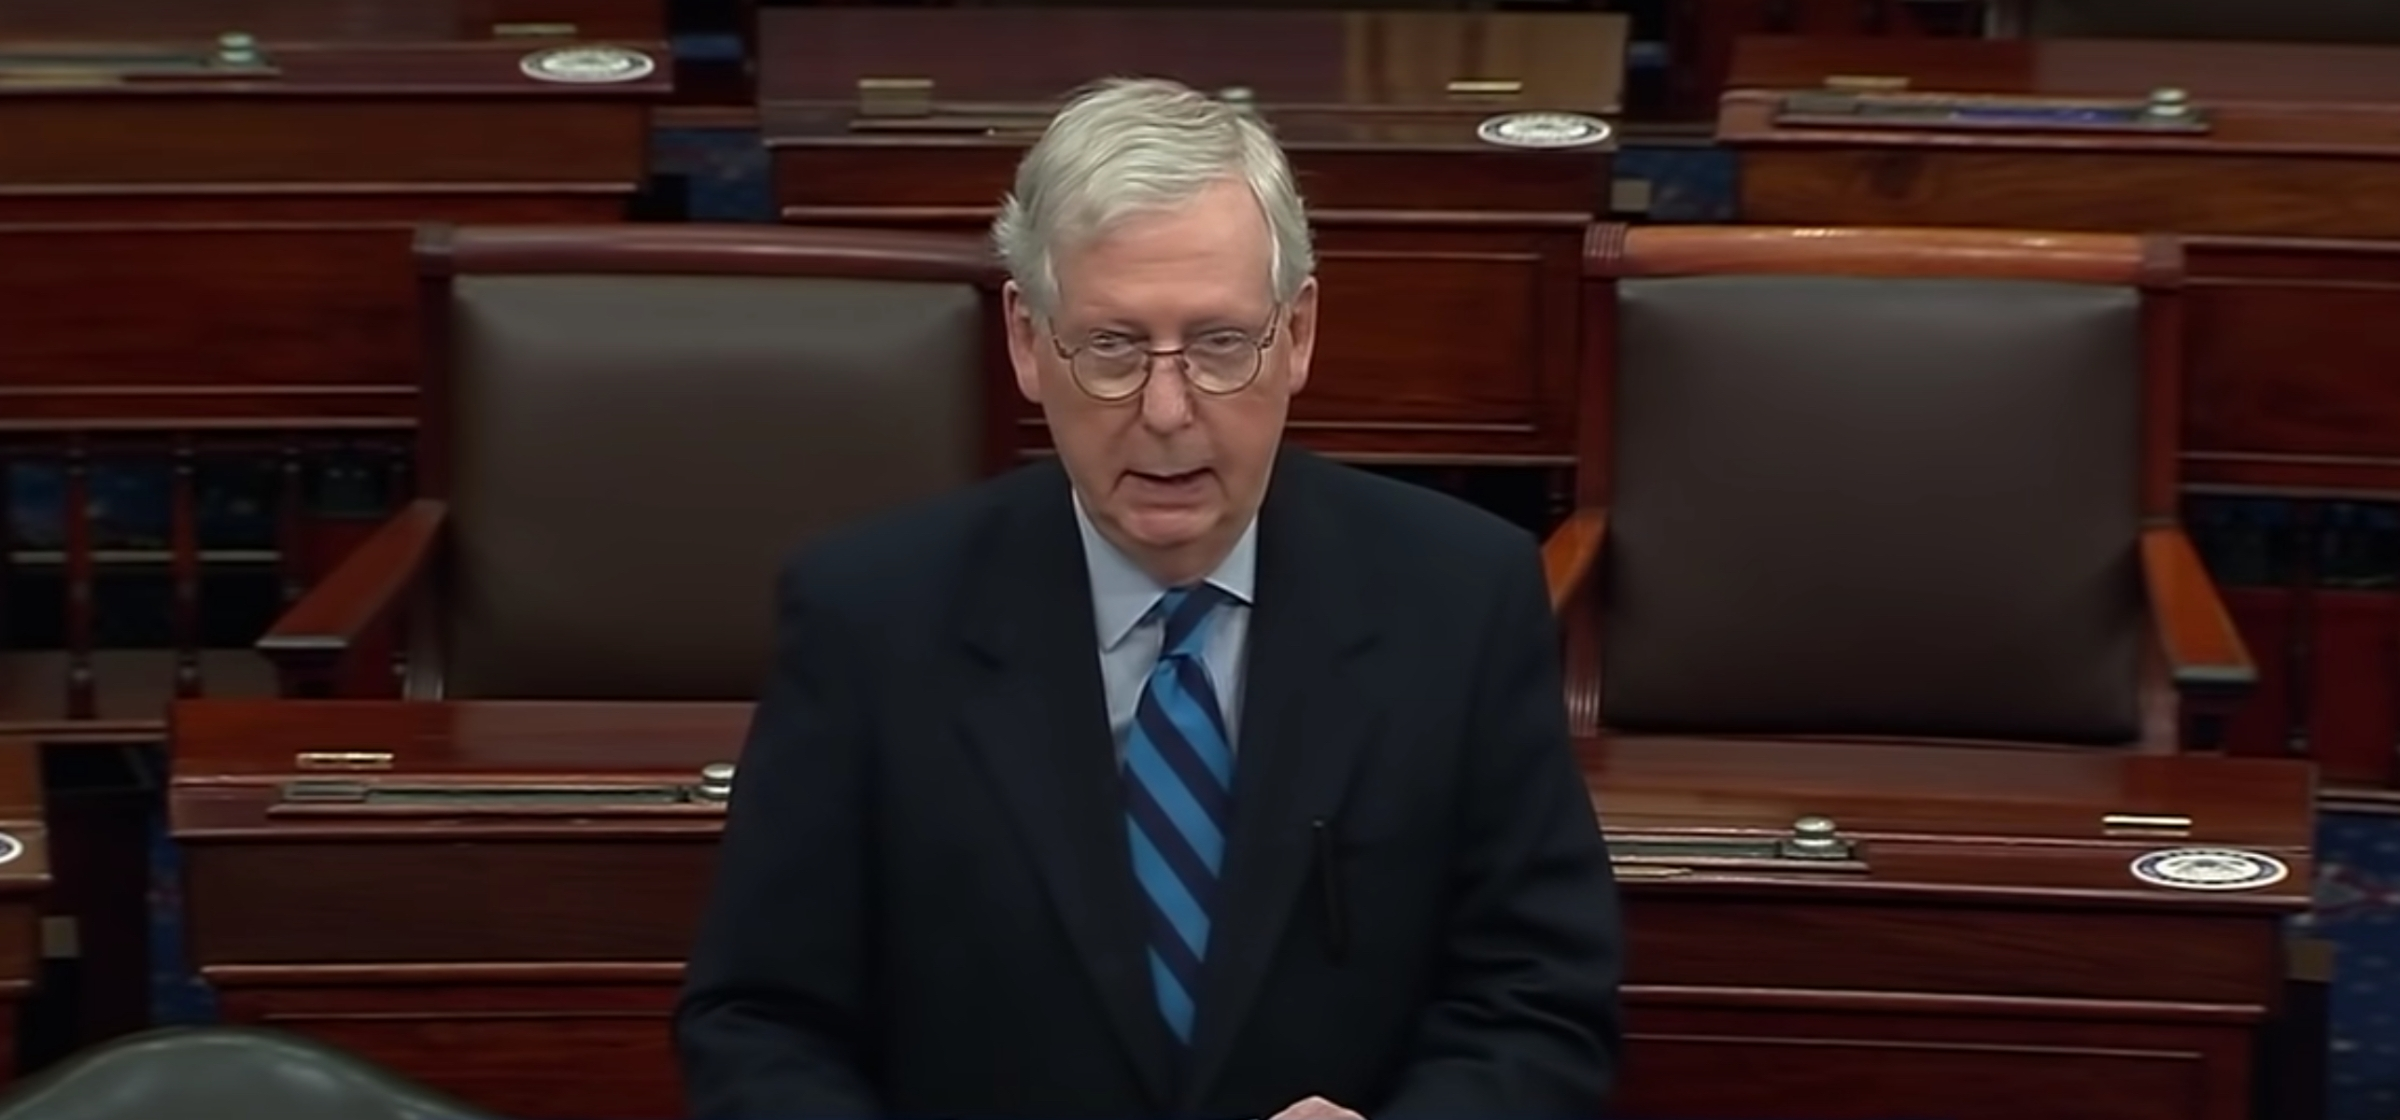 Mitch McConnell speaking in the Senate